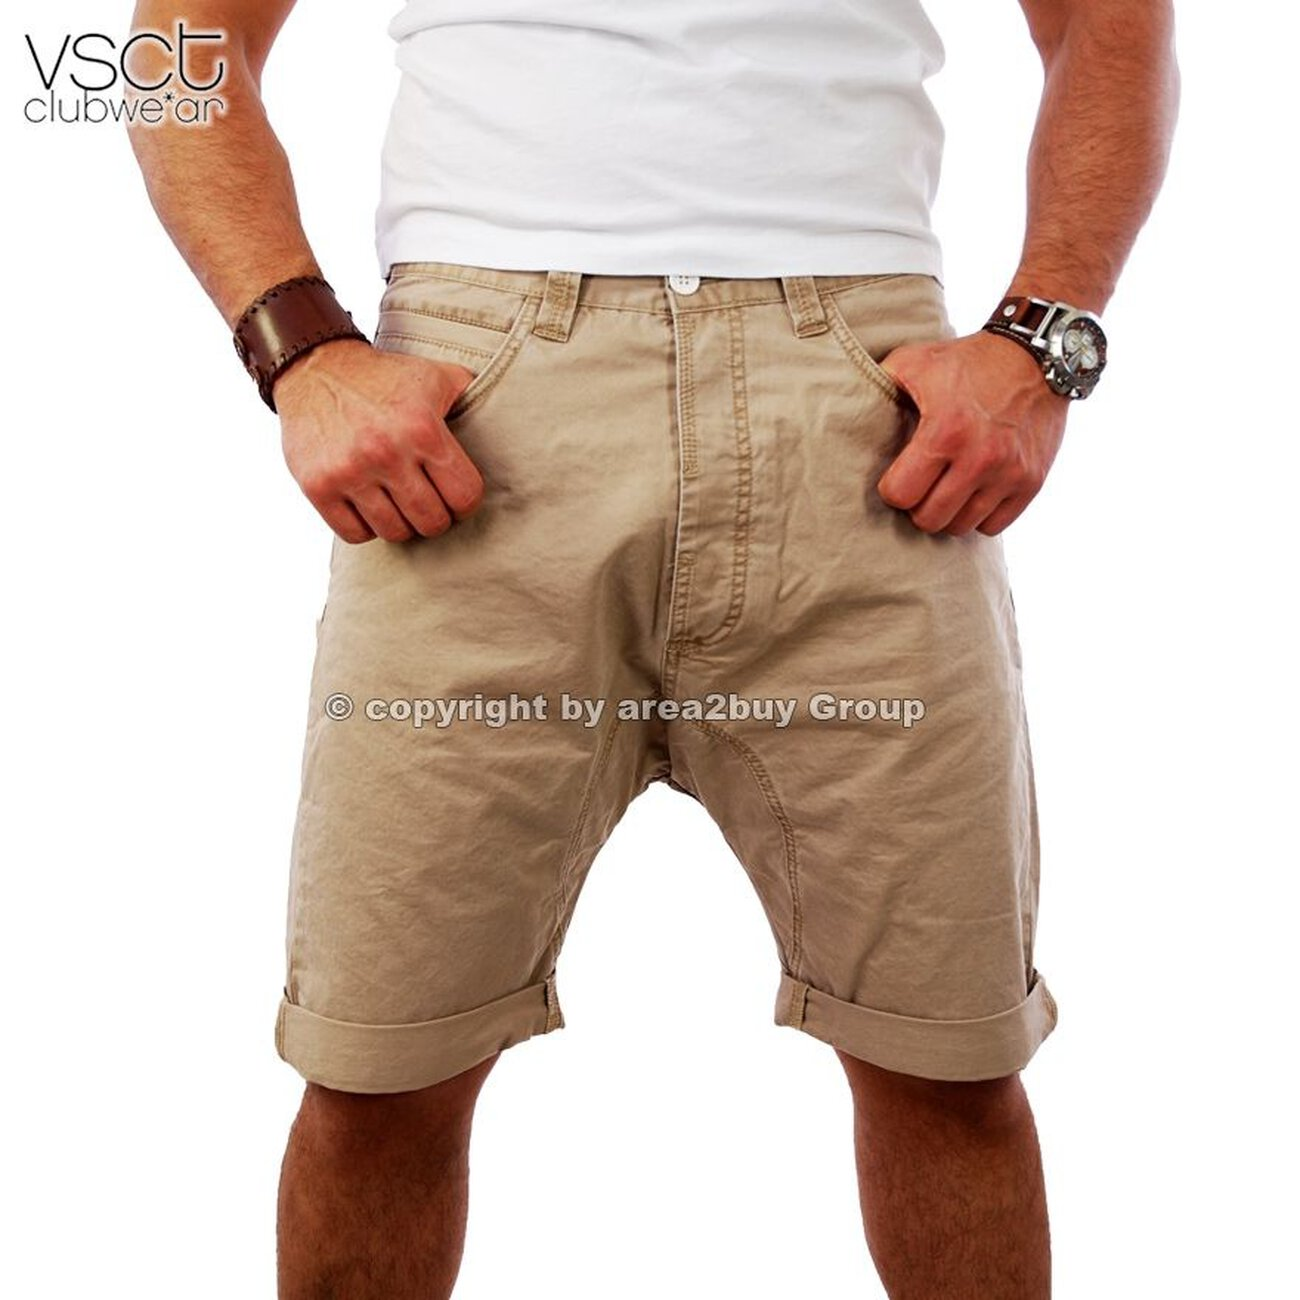 shorts herren beige carpi chino herren von vsct g nstig. Black Bedroom Furniture Sets. Home Design Ideas